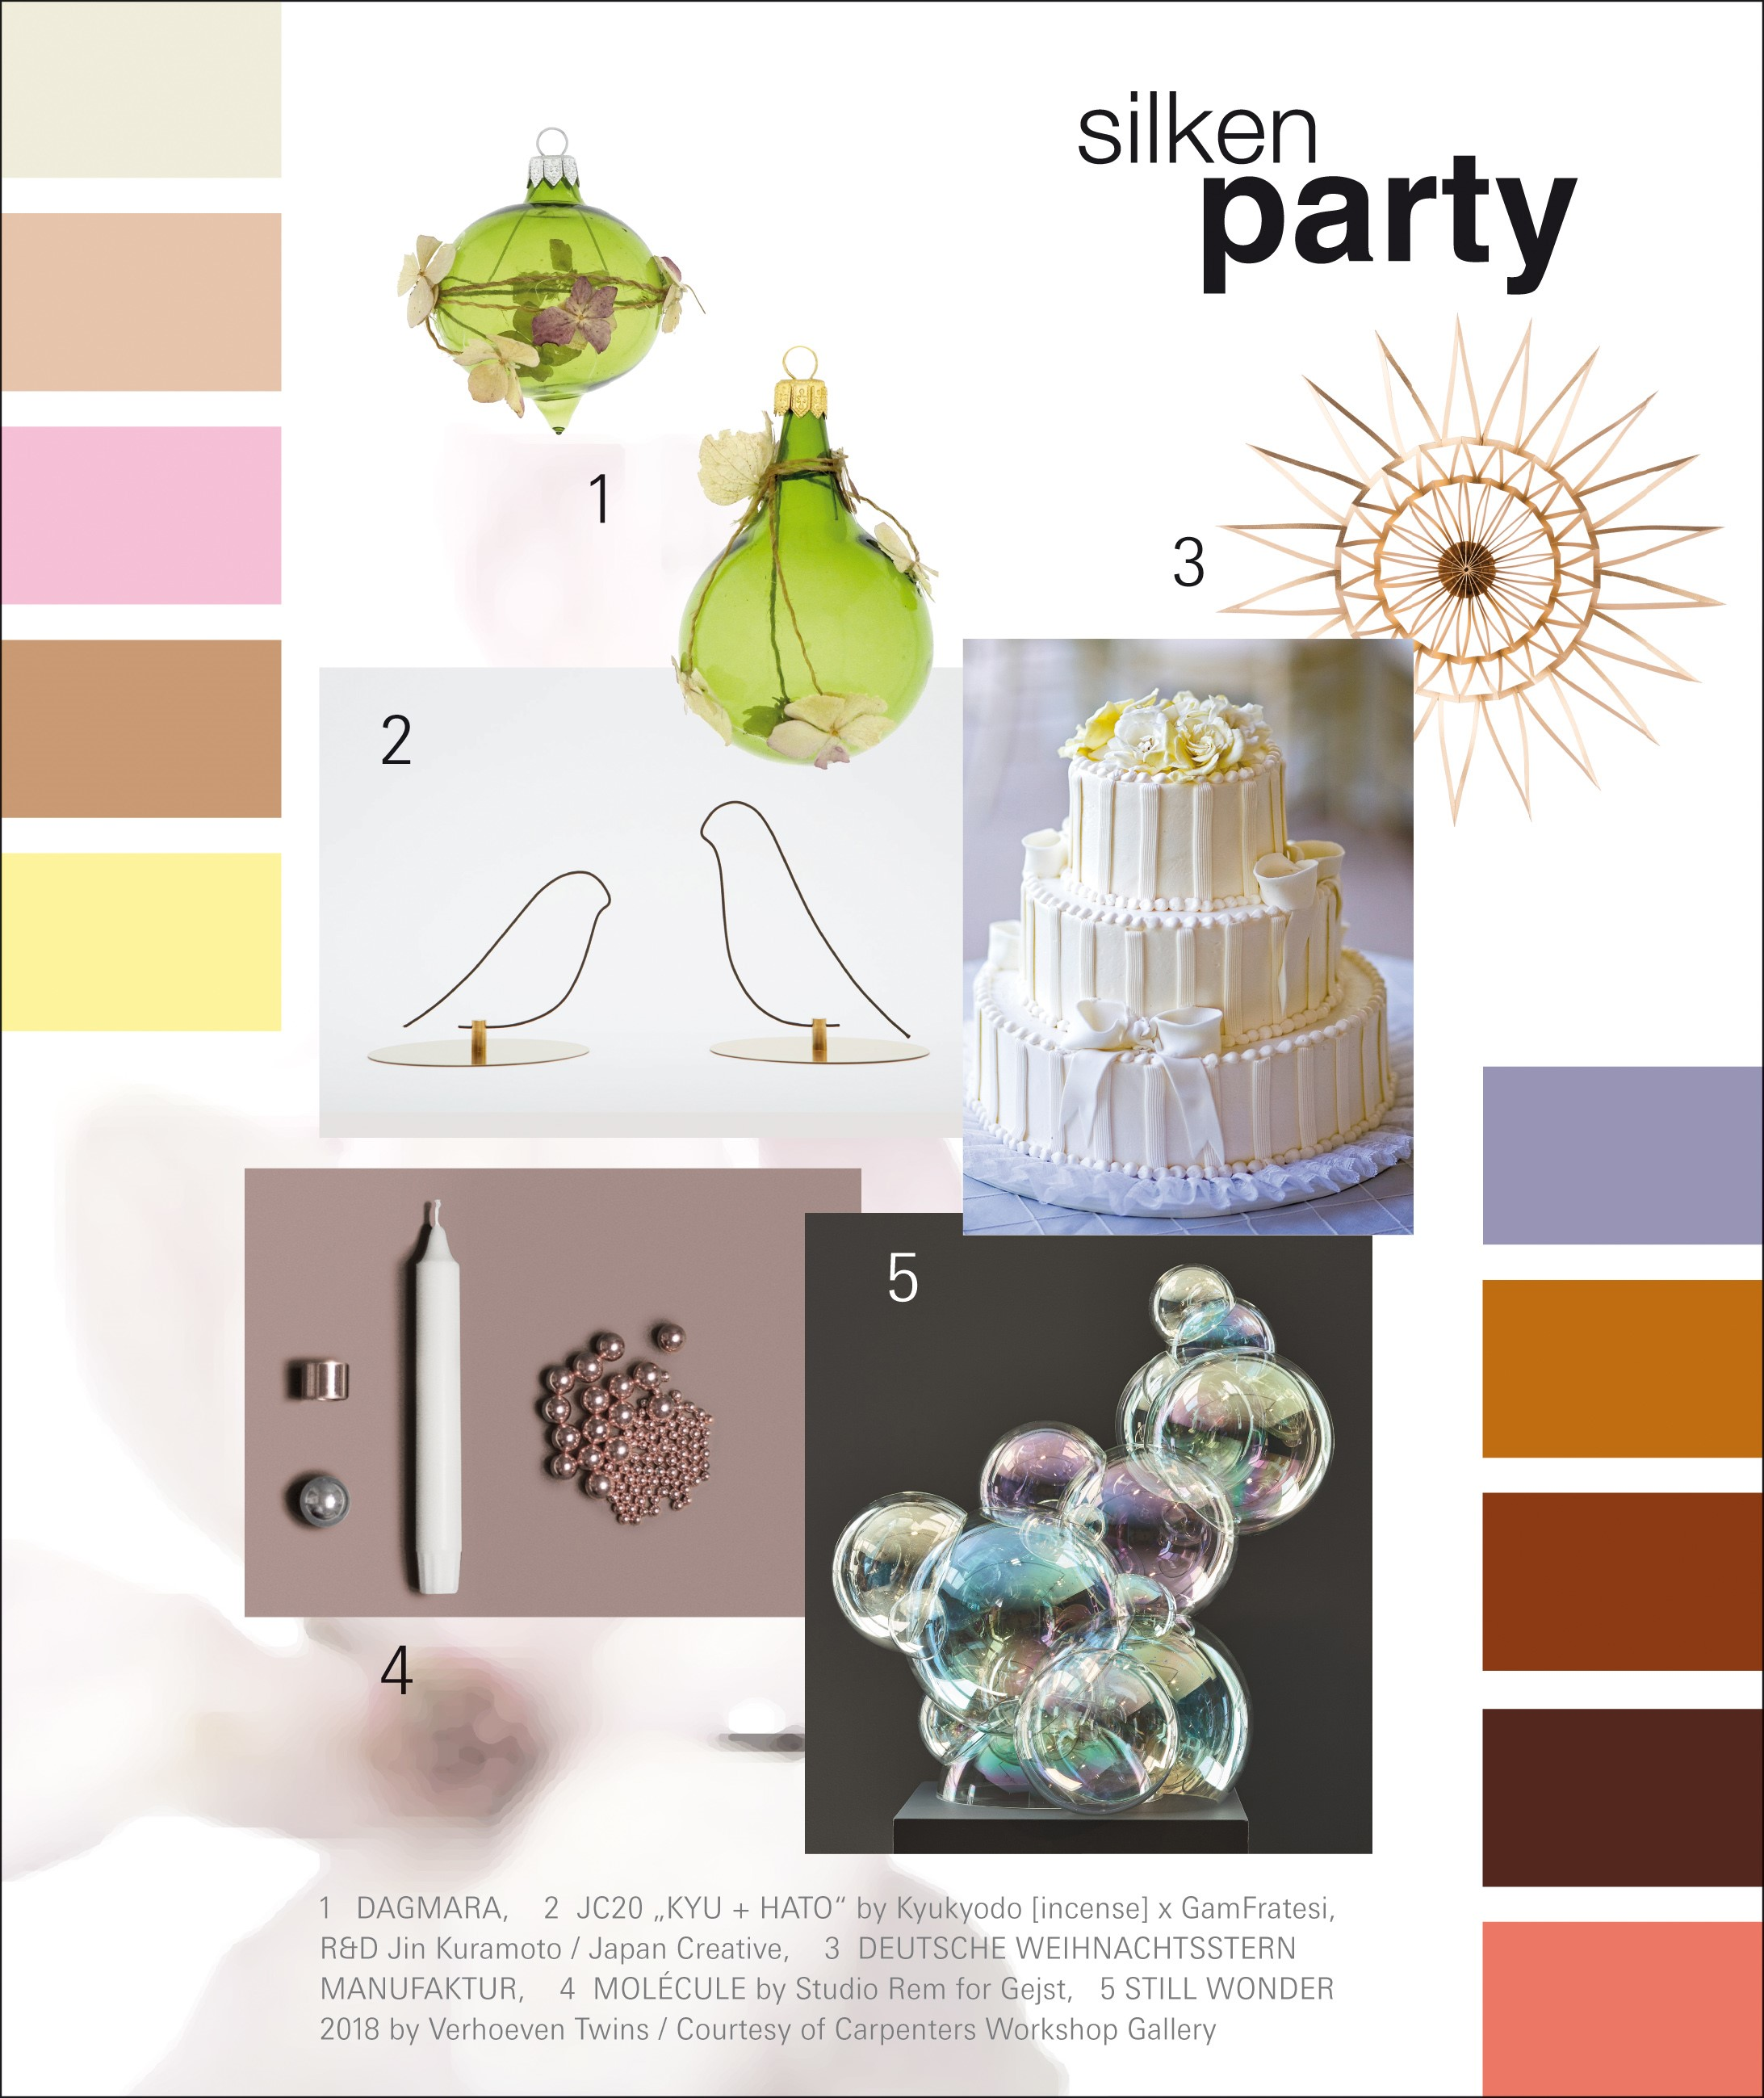 Christmasworld Trend 2020/21: silken party